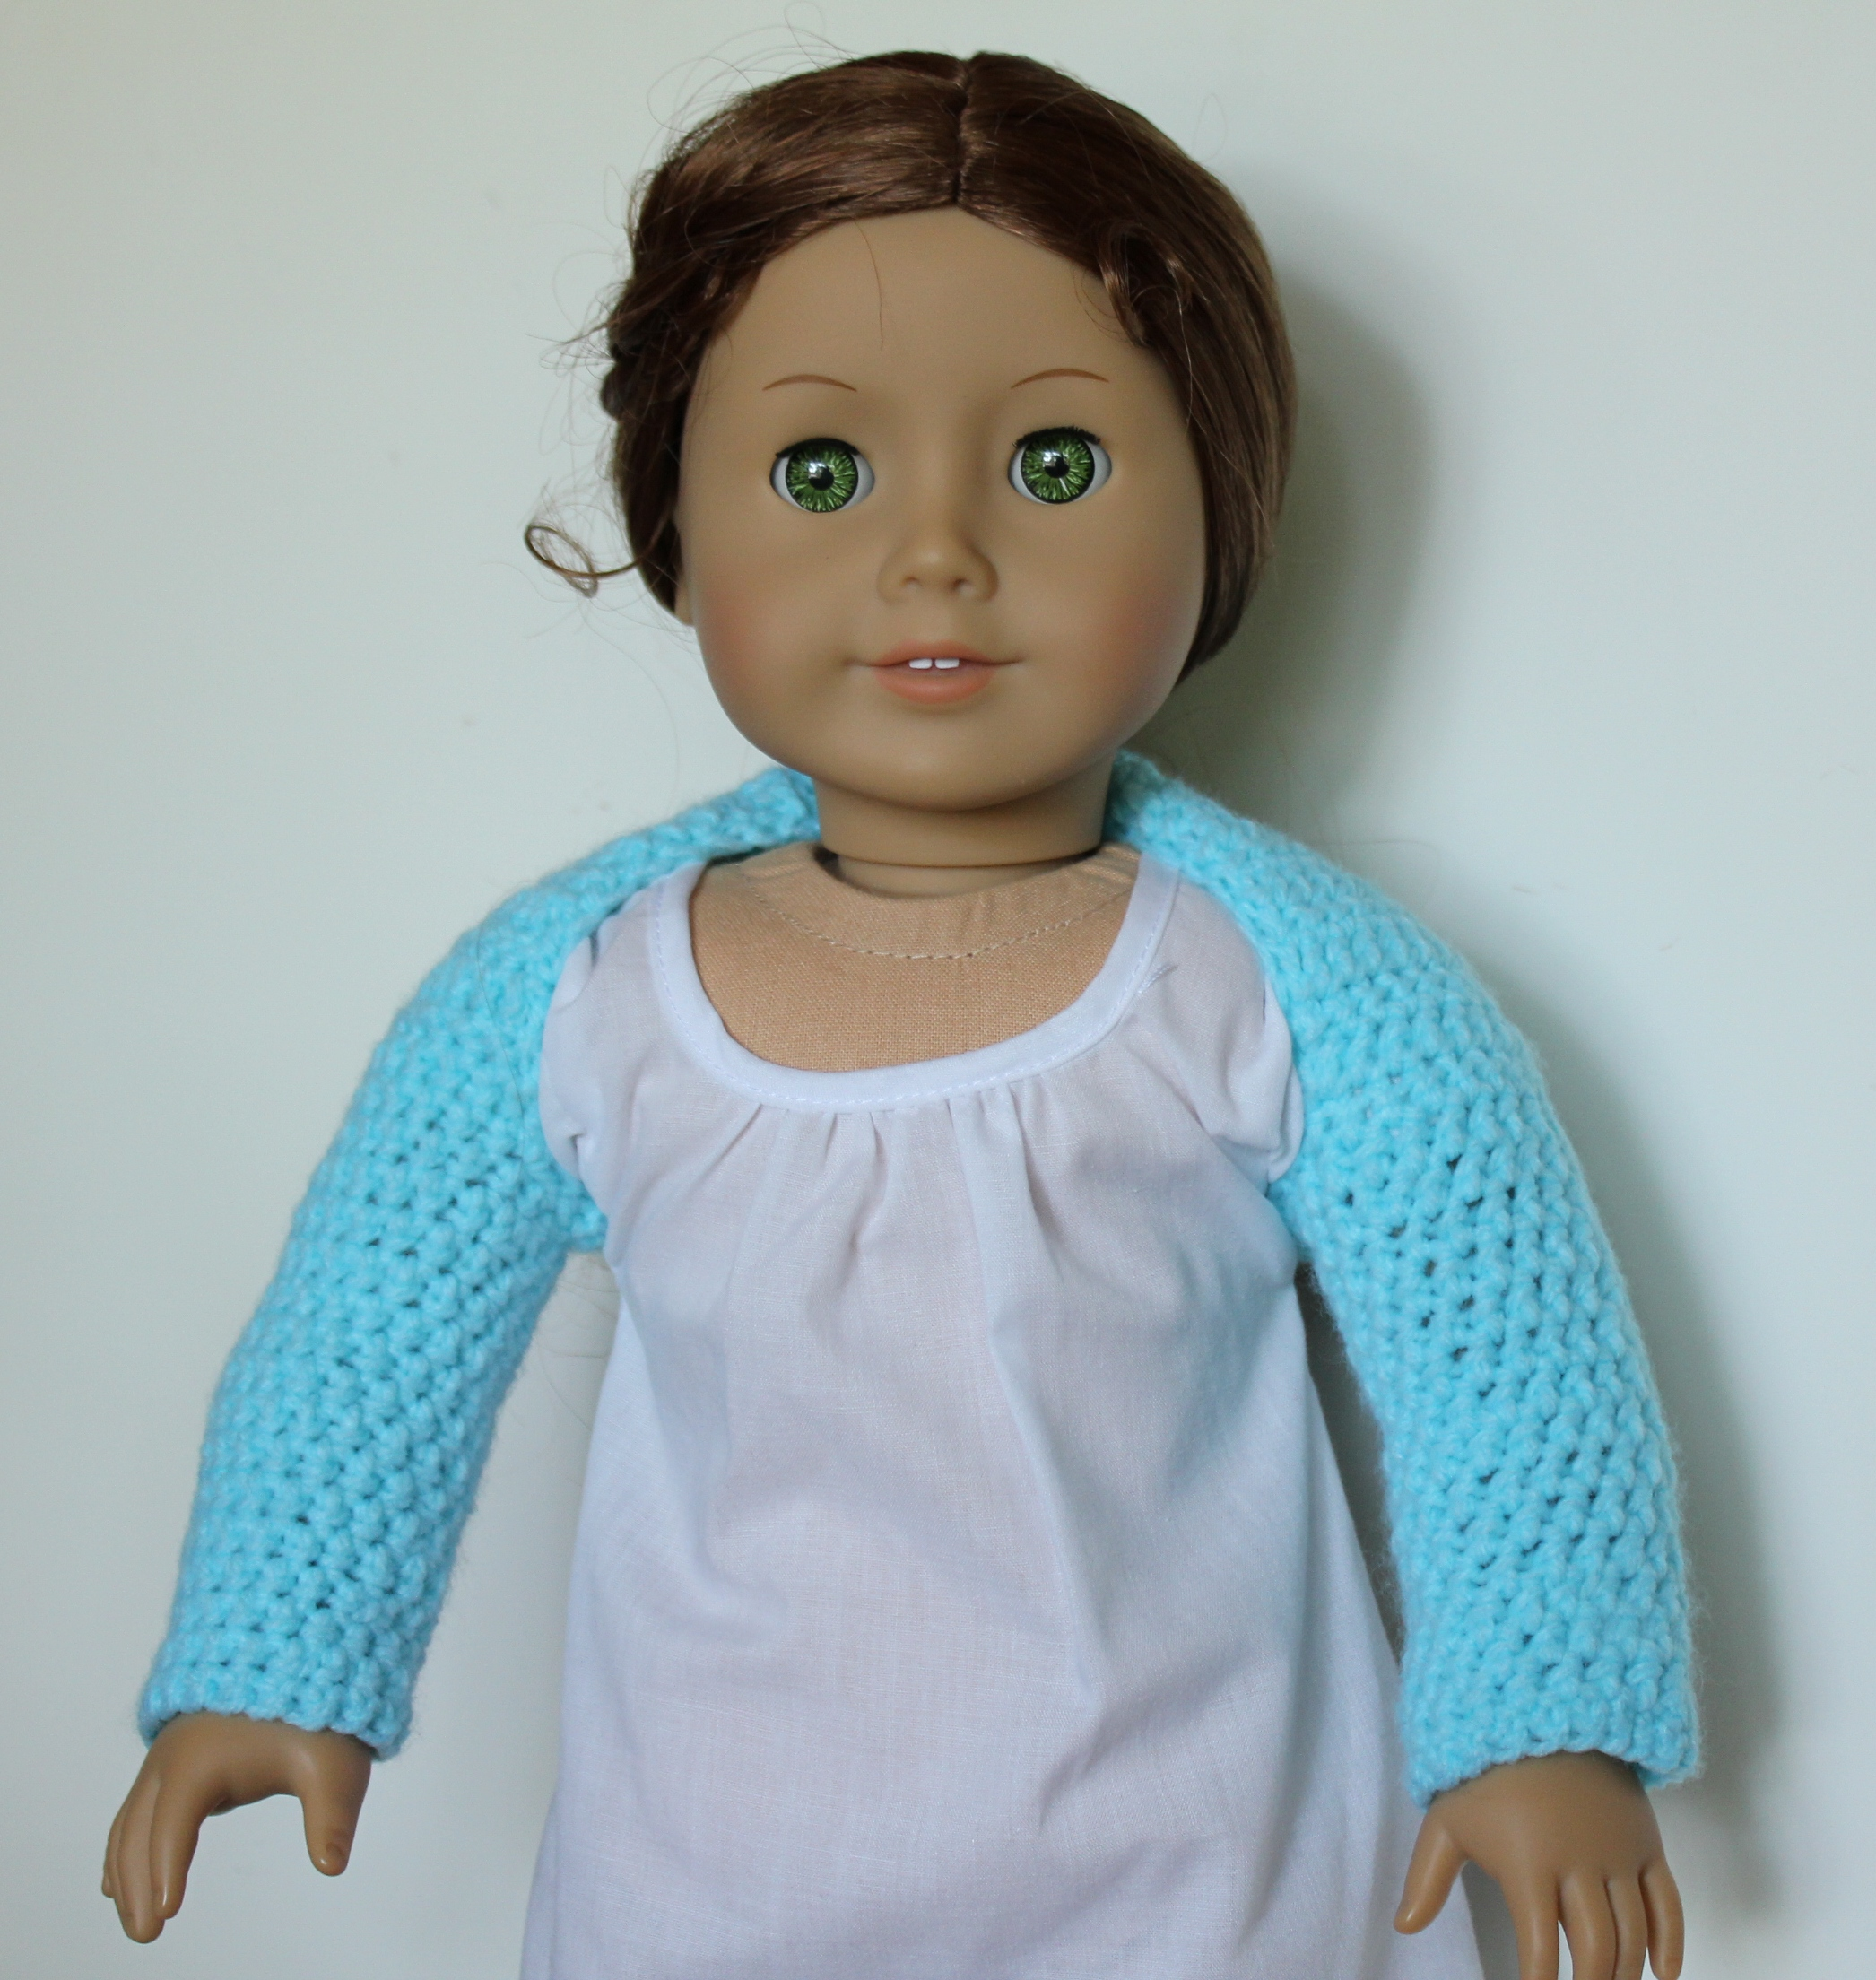 My Daughter's American Girl Doll Needed A New Crocheted Ballet Shrug